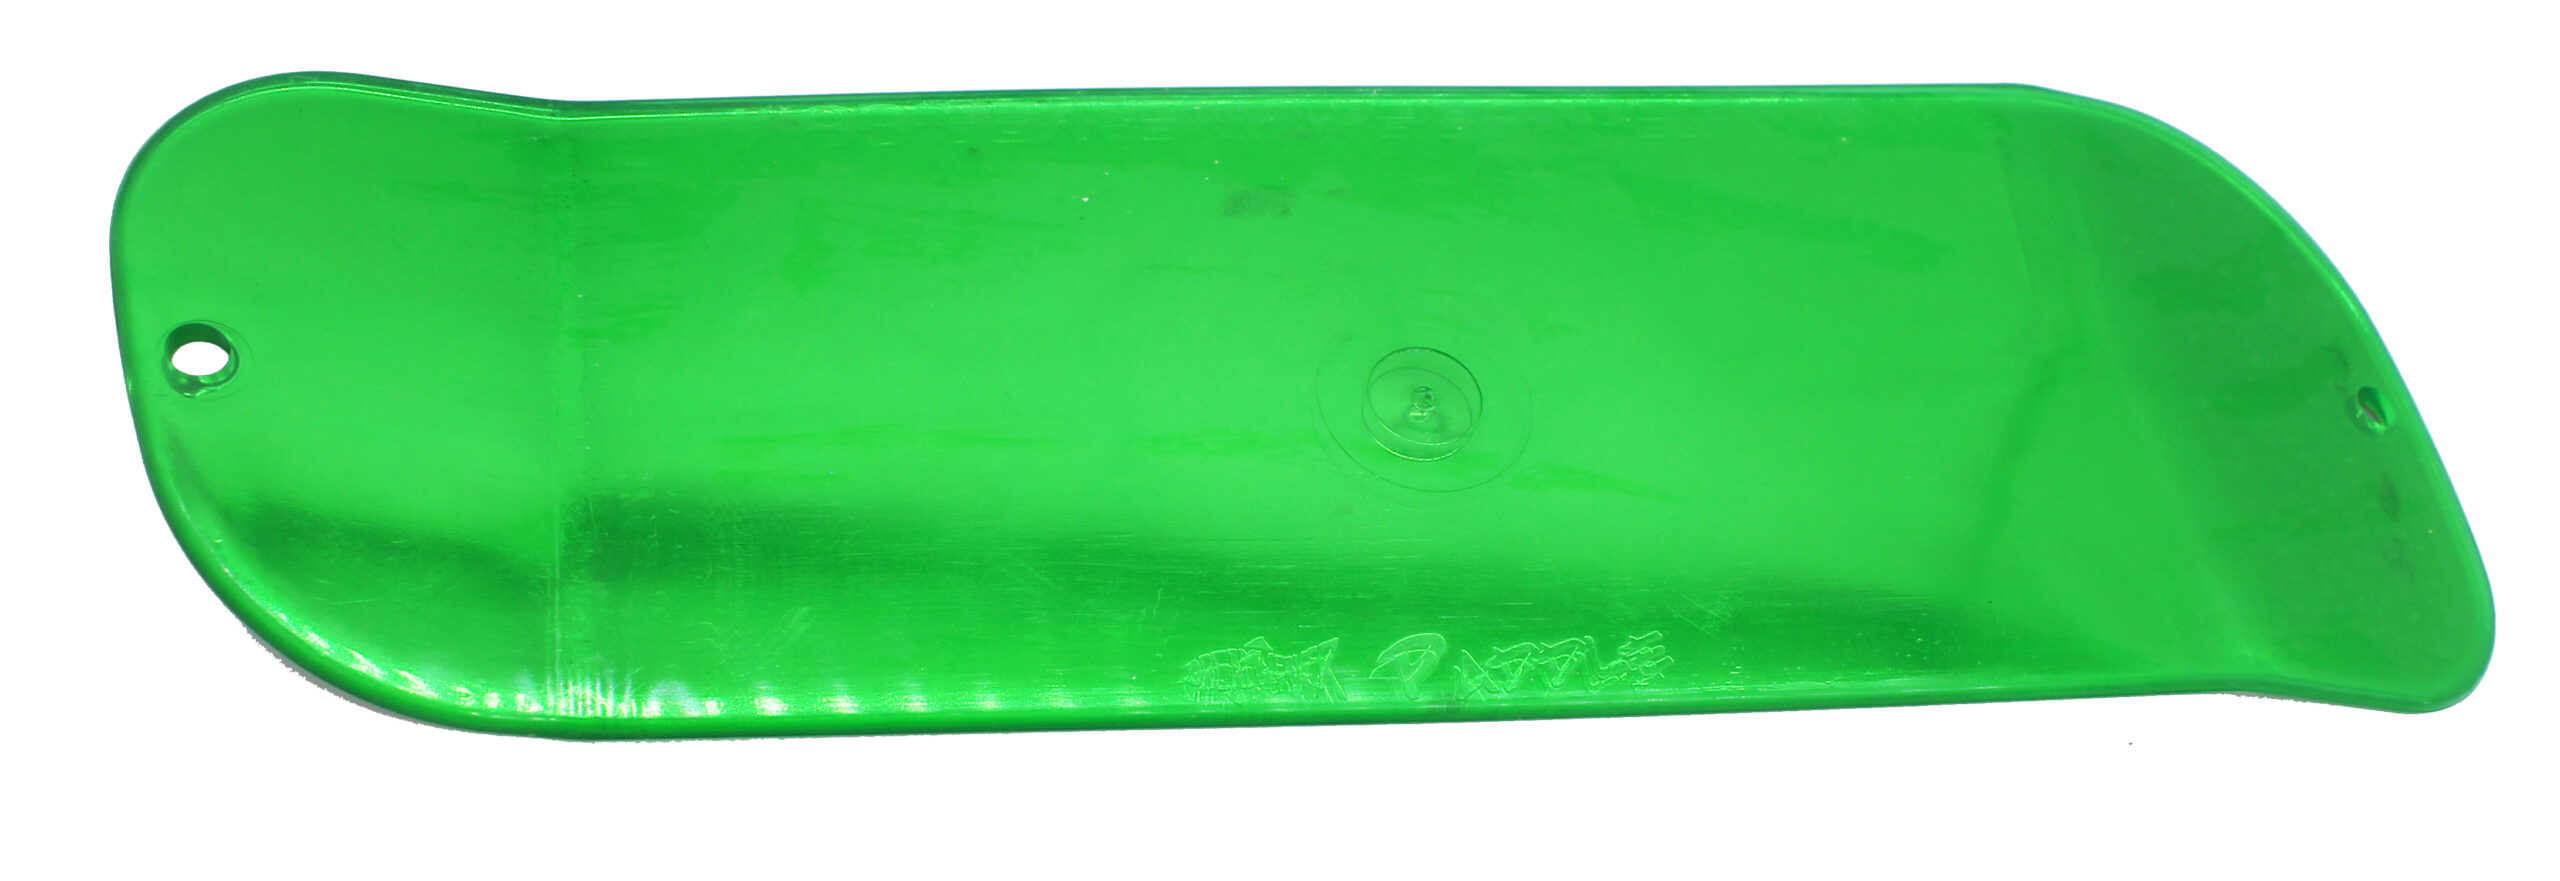 Paddle 11 – G. Green/Chrome